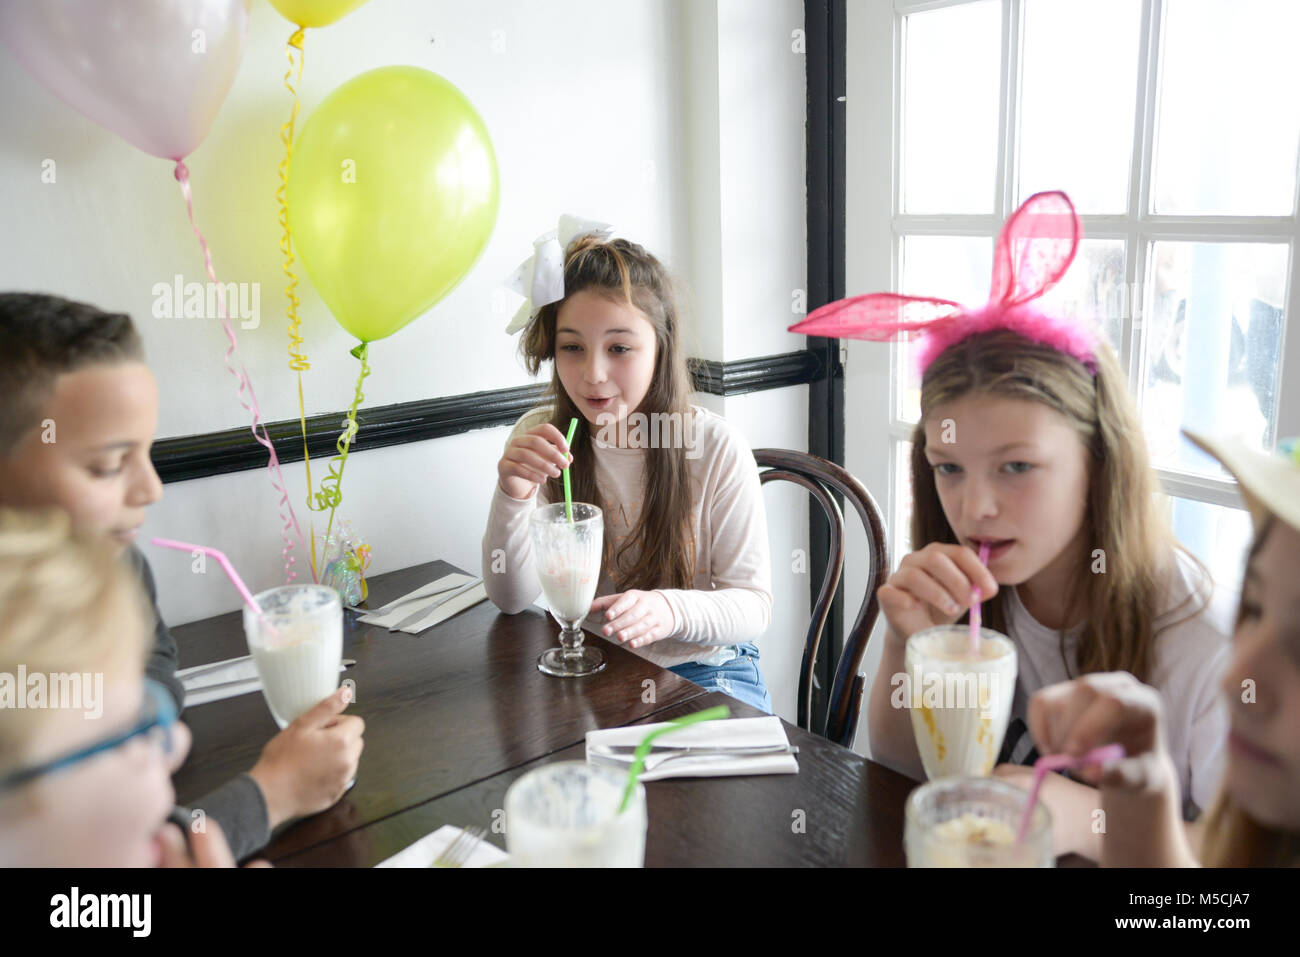 Children at. a party are drinking large milkshakes, there are balloons and table decorations - Stock Image